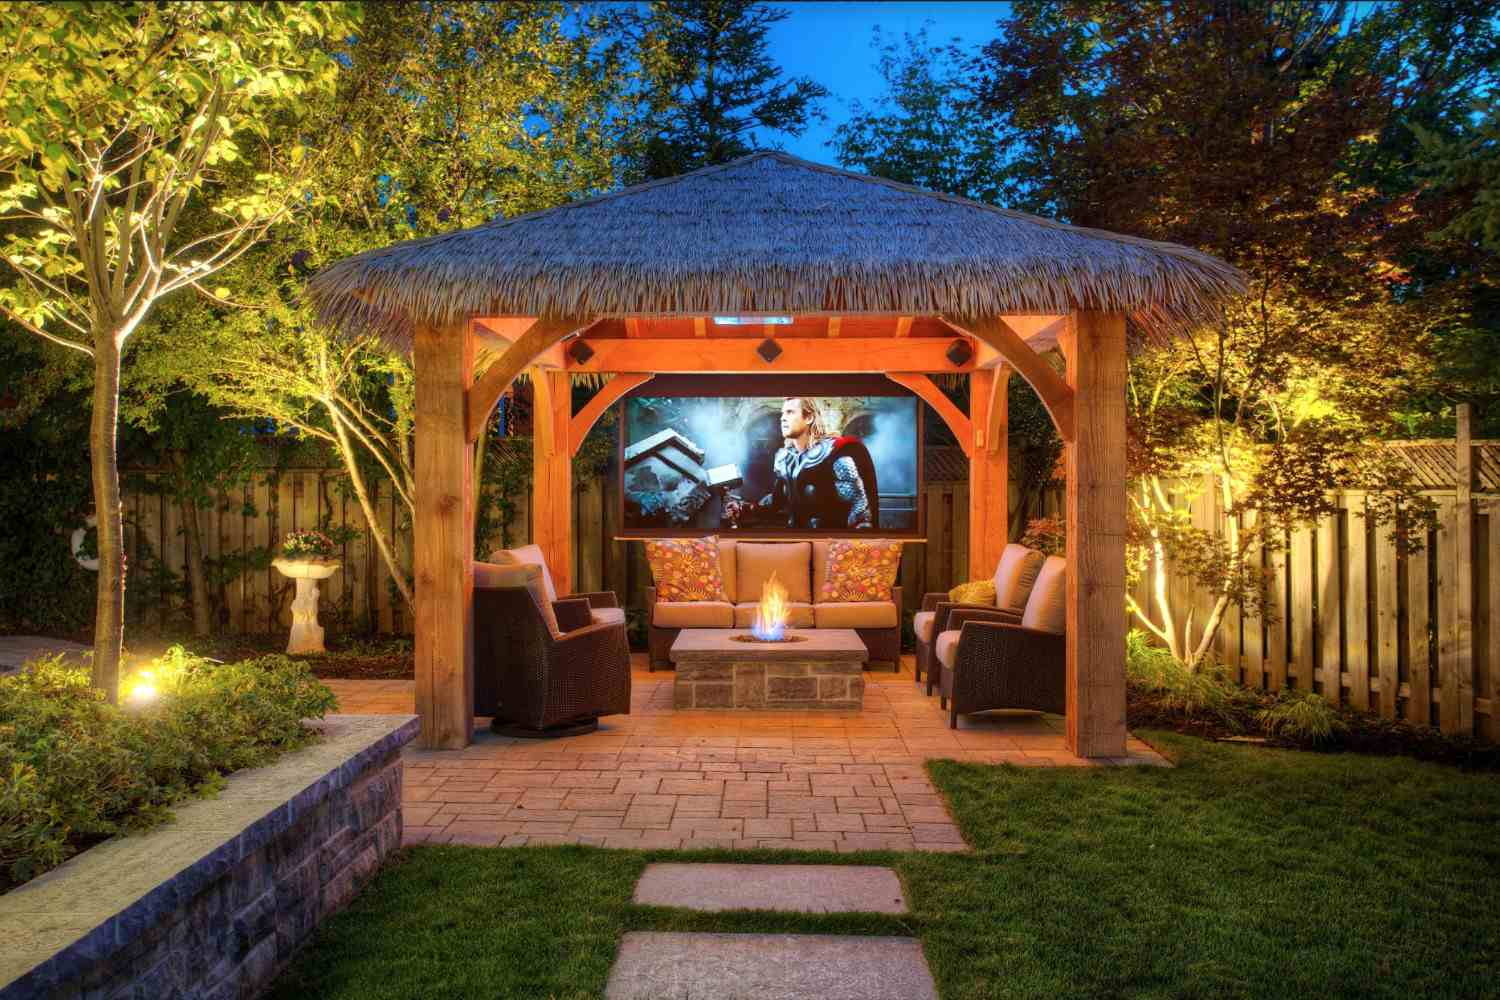 Backyard Gazebo 27 gorgeous gazebo design ideas